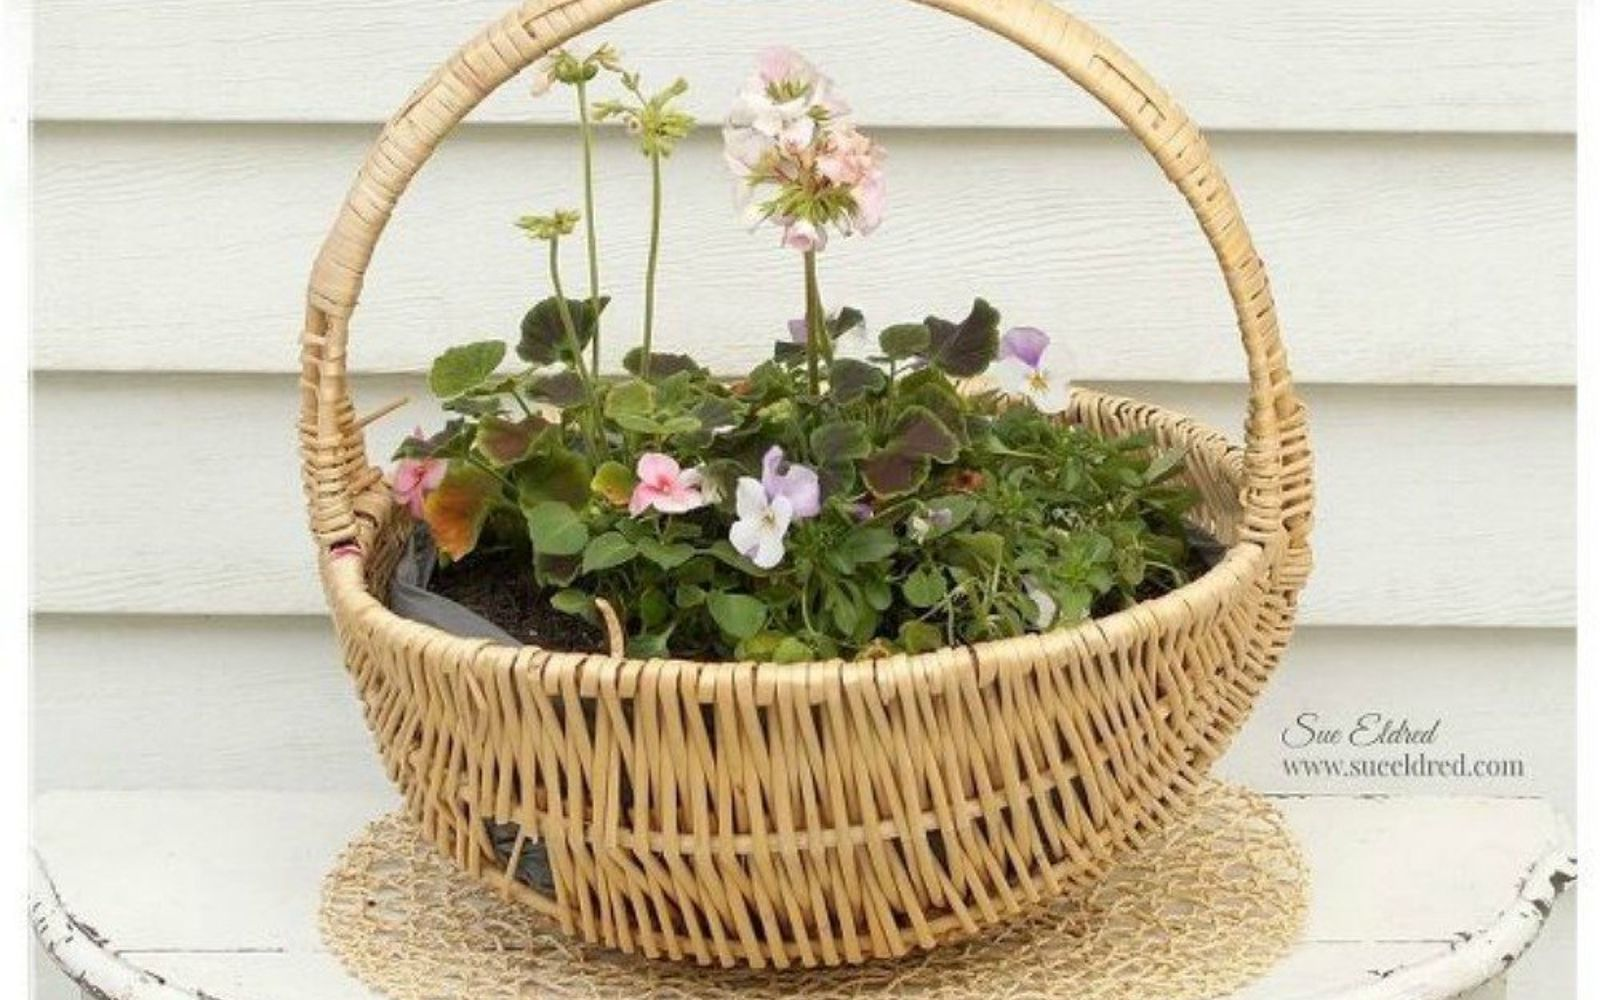 s grab an old basket for these clever ideas, crafts, Turn it into a pretty planter